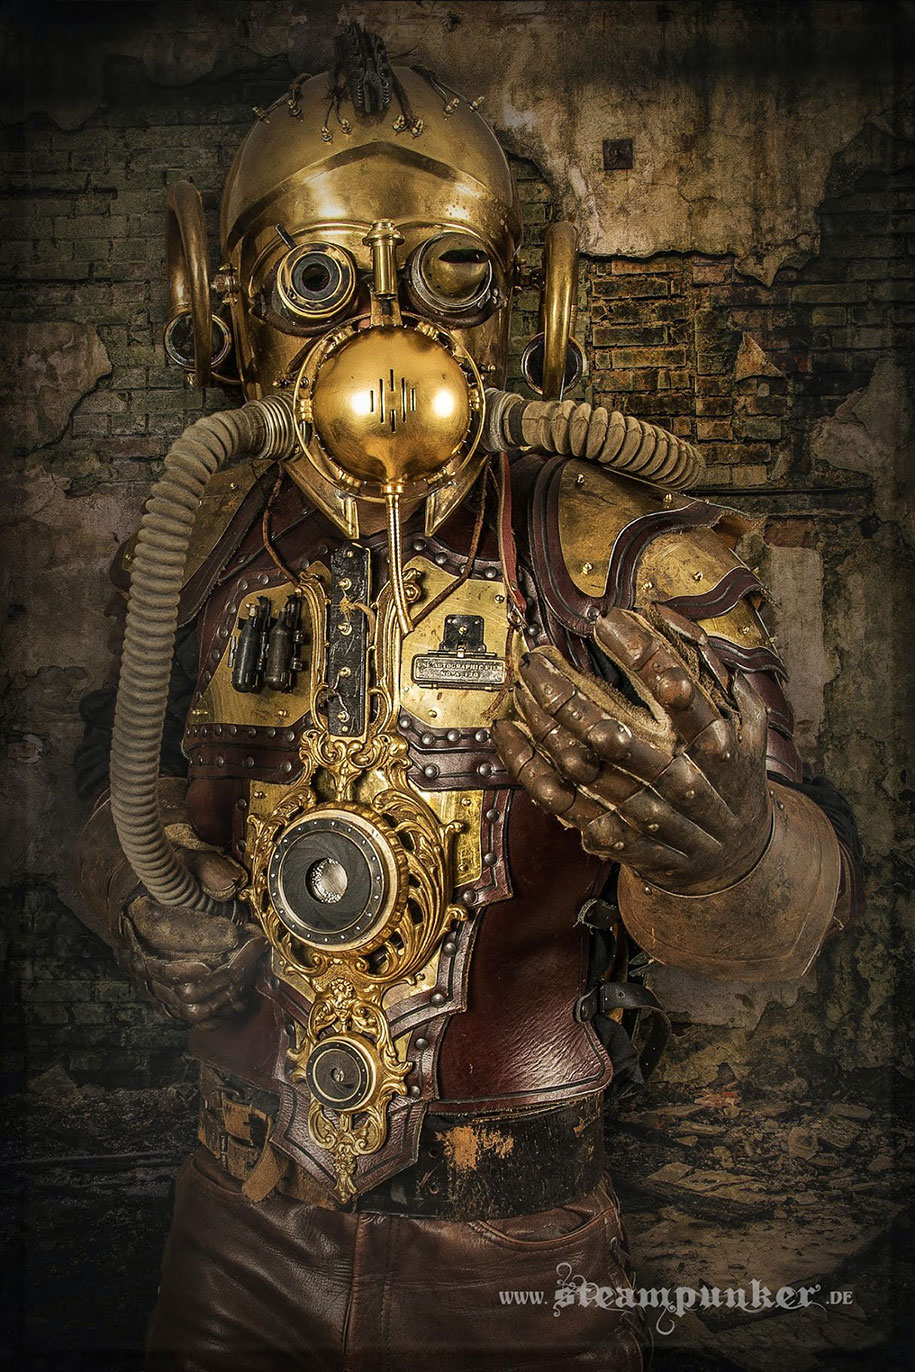 cosplay-costumes-steampunk-art-armor-clothing-alexander-schlesier-3